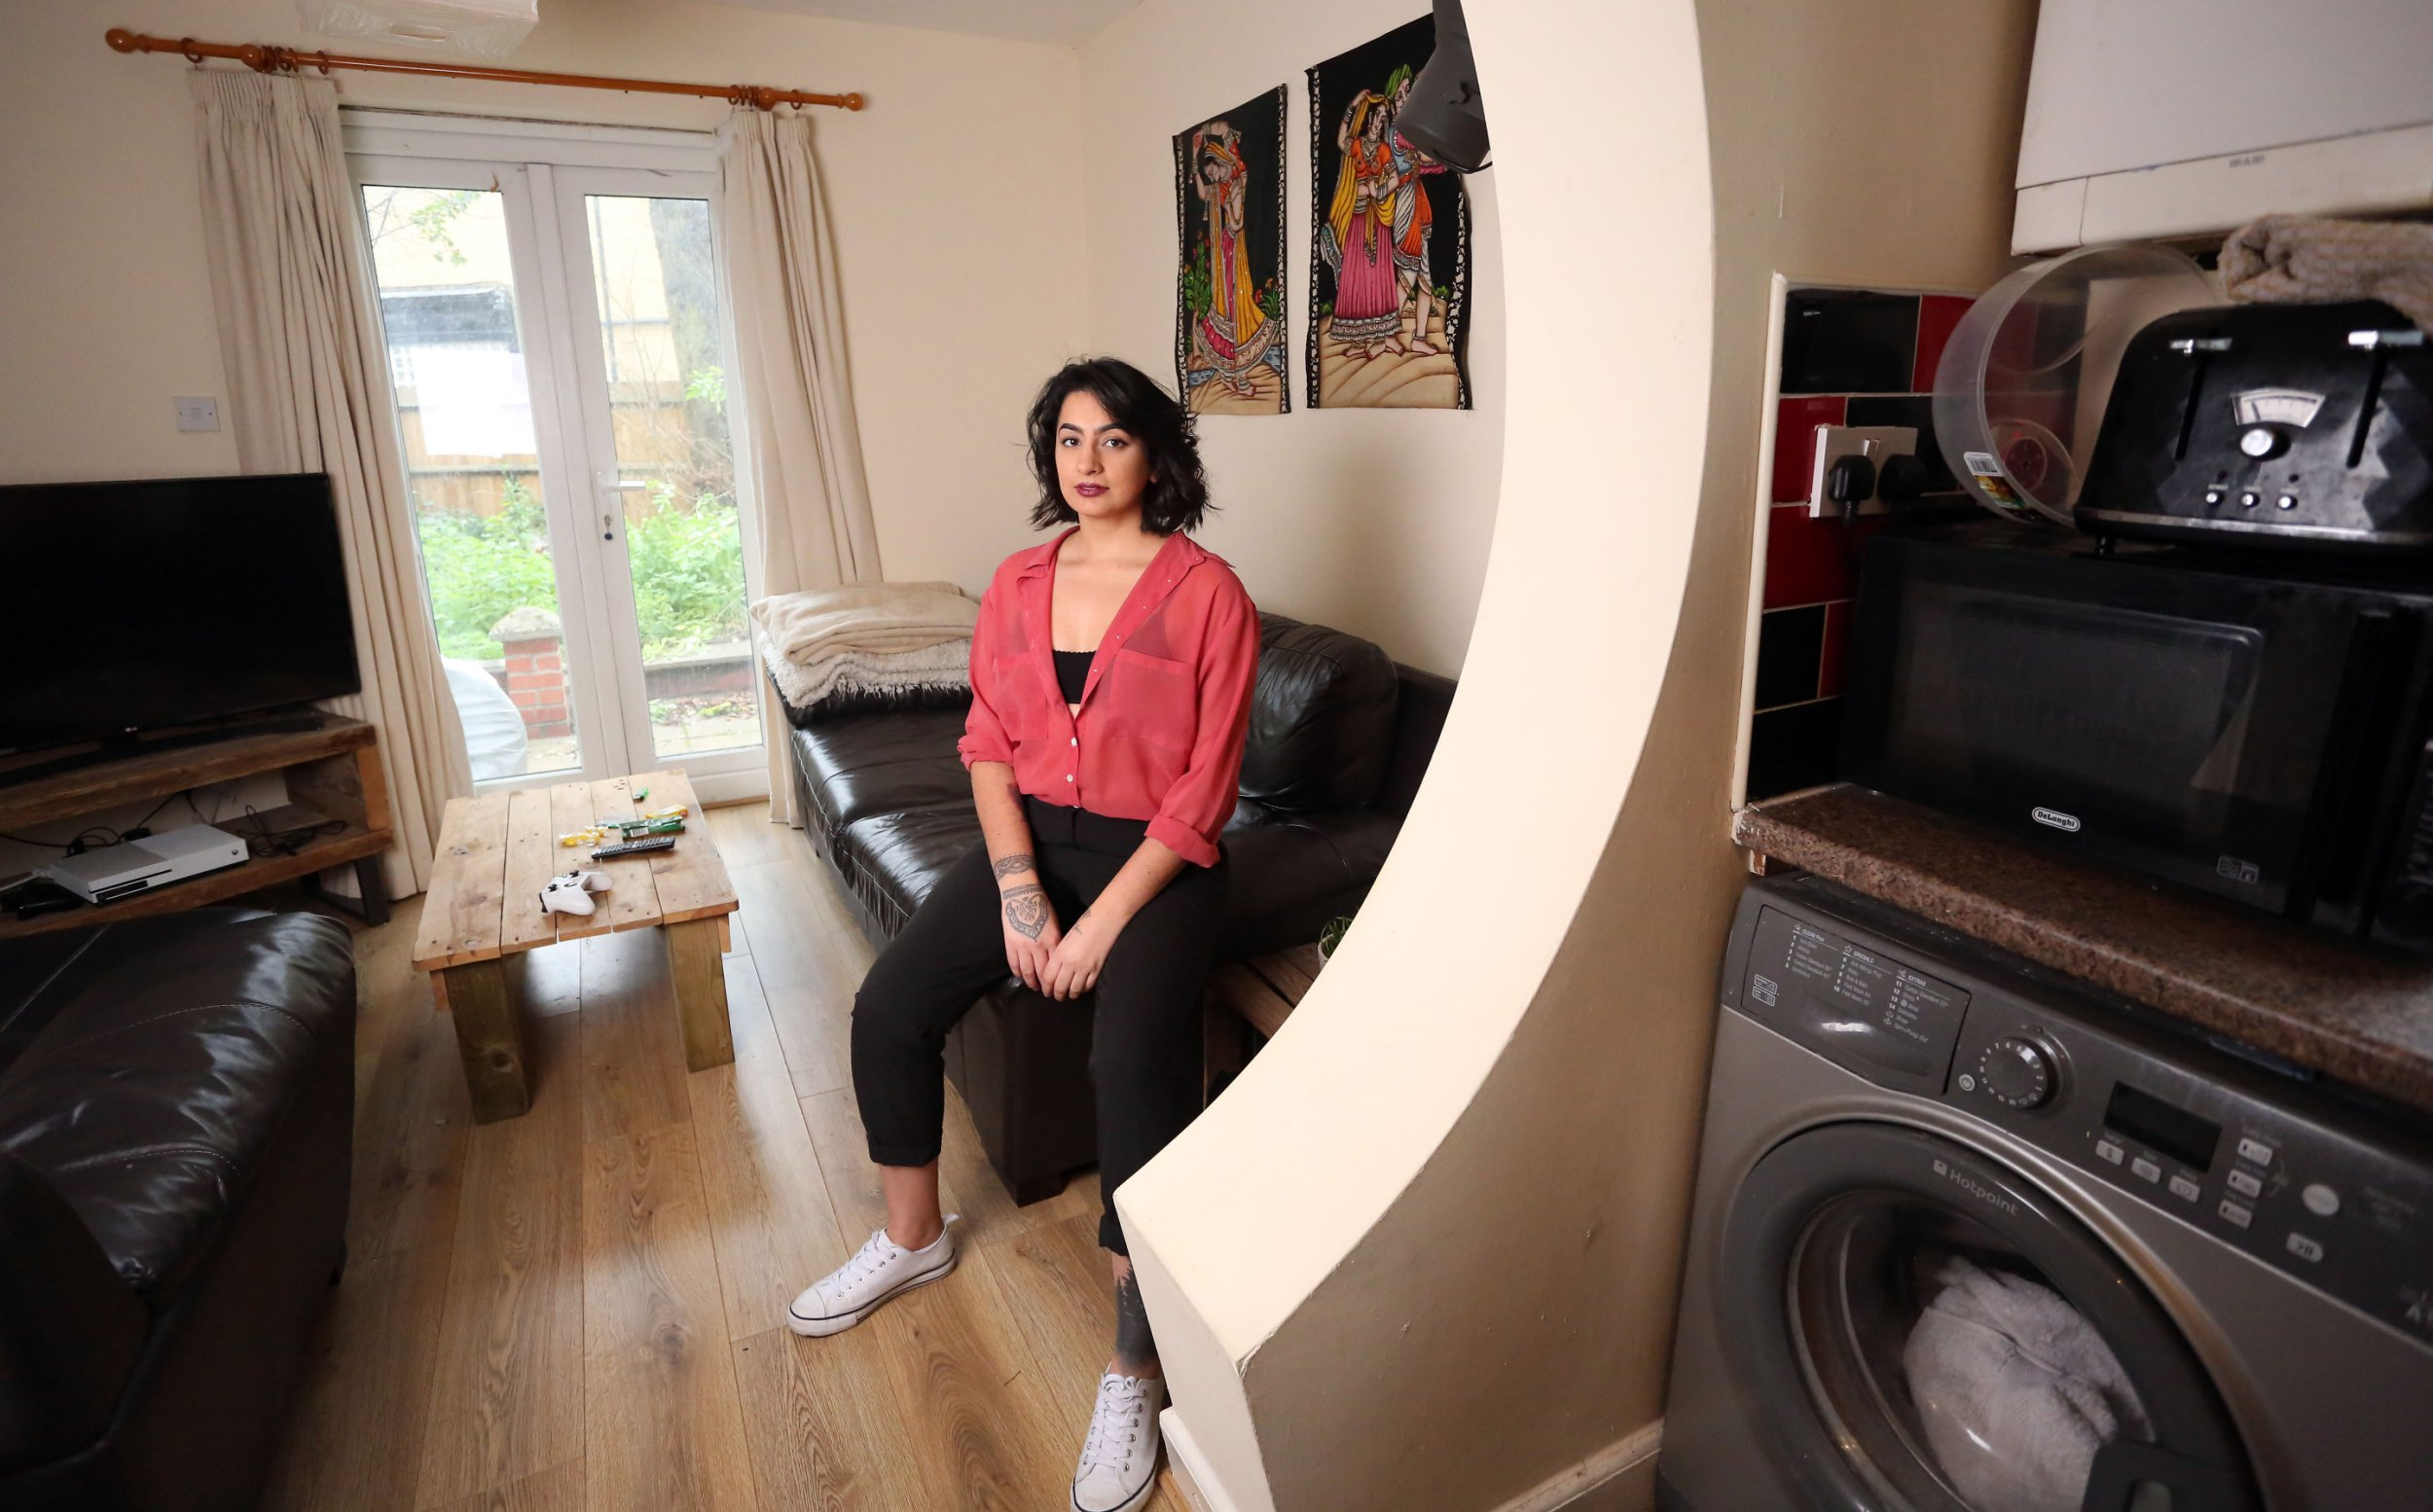 LONDON, UNITED KINGDOM, JANUARY 10TH 2019. WHAT I RENT: STOKE NEWINGTON Tenant Sharan Dhaliwal is pictured in the living room of the two-bedroomed flat she shares with flatmate Stevie in Stoke Newington, London, 10th January 2019. Sharan and Stevie pay GBP ?675 a month each, not including bills. Photo credit: Susannah Ireland